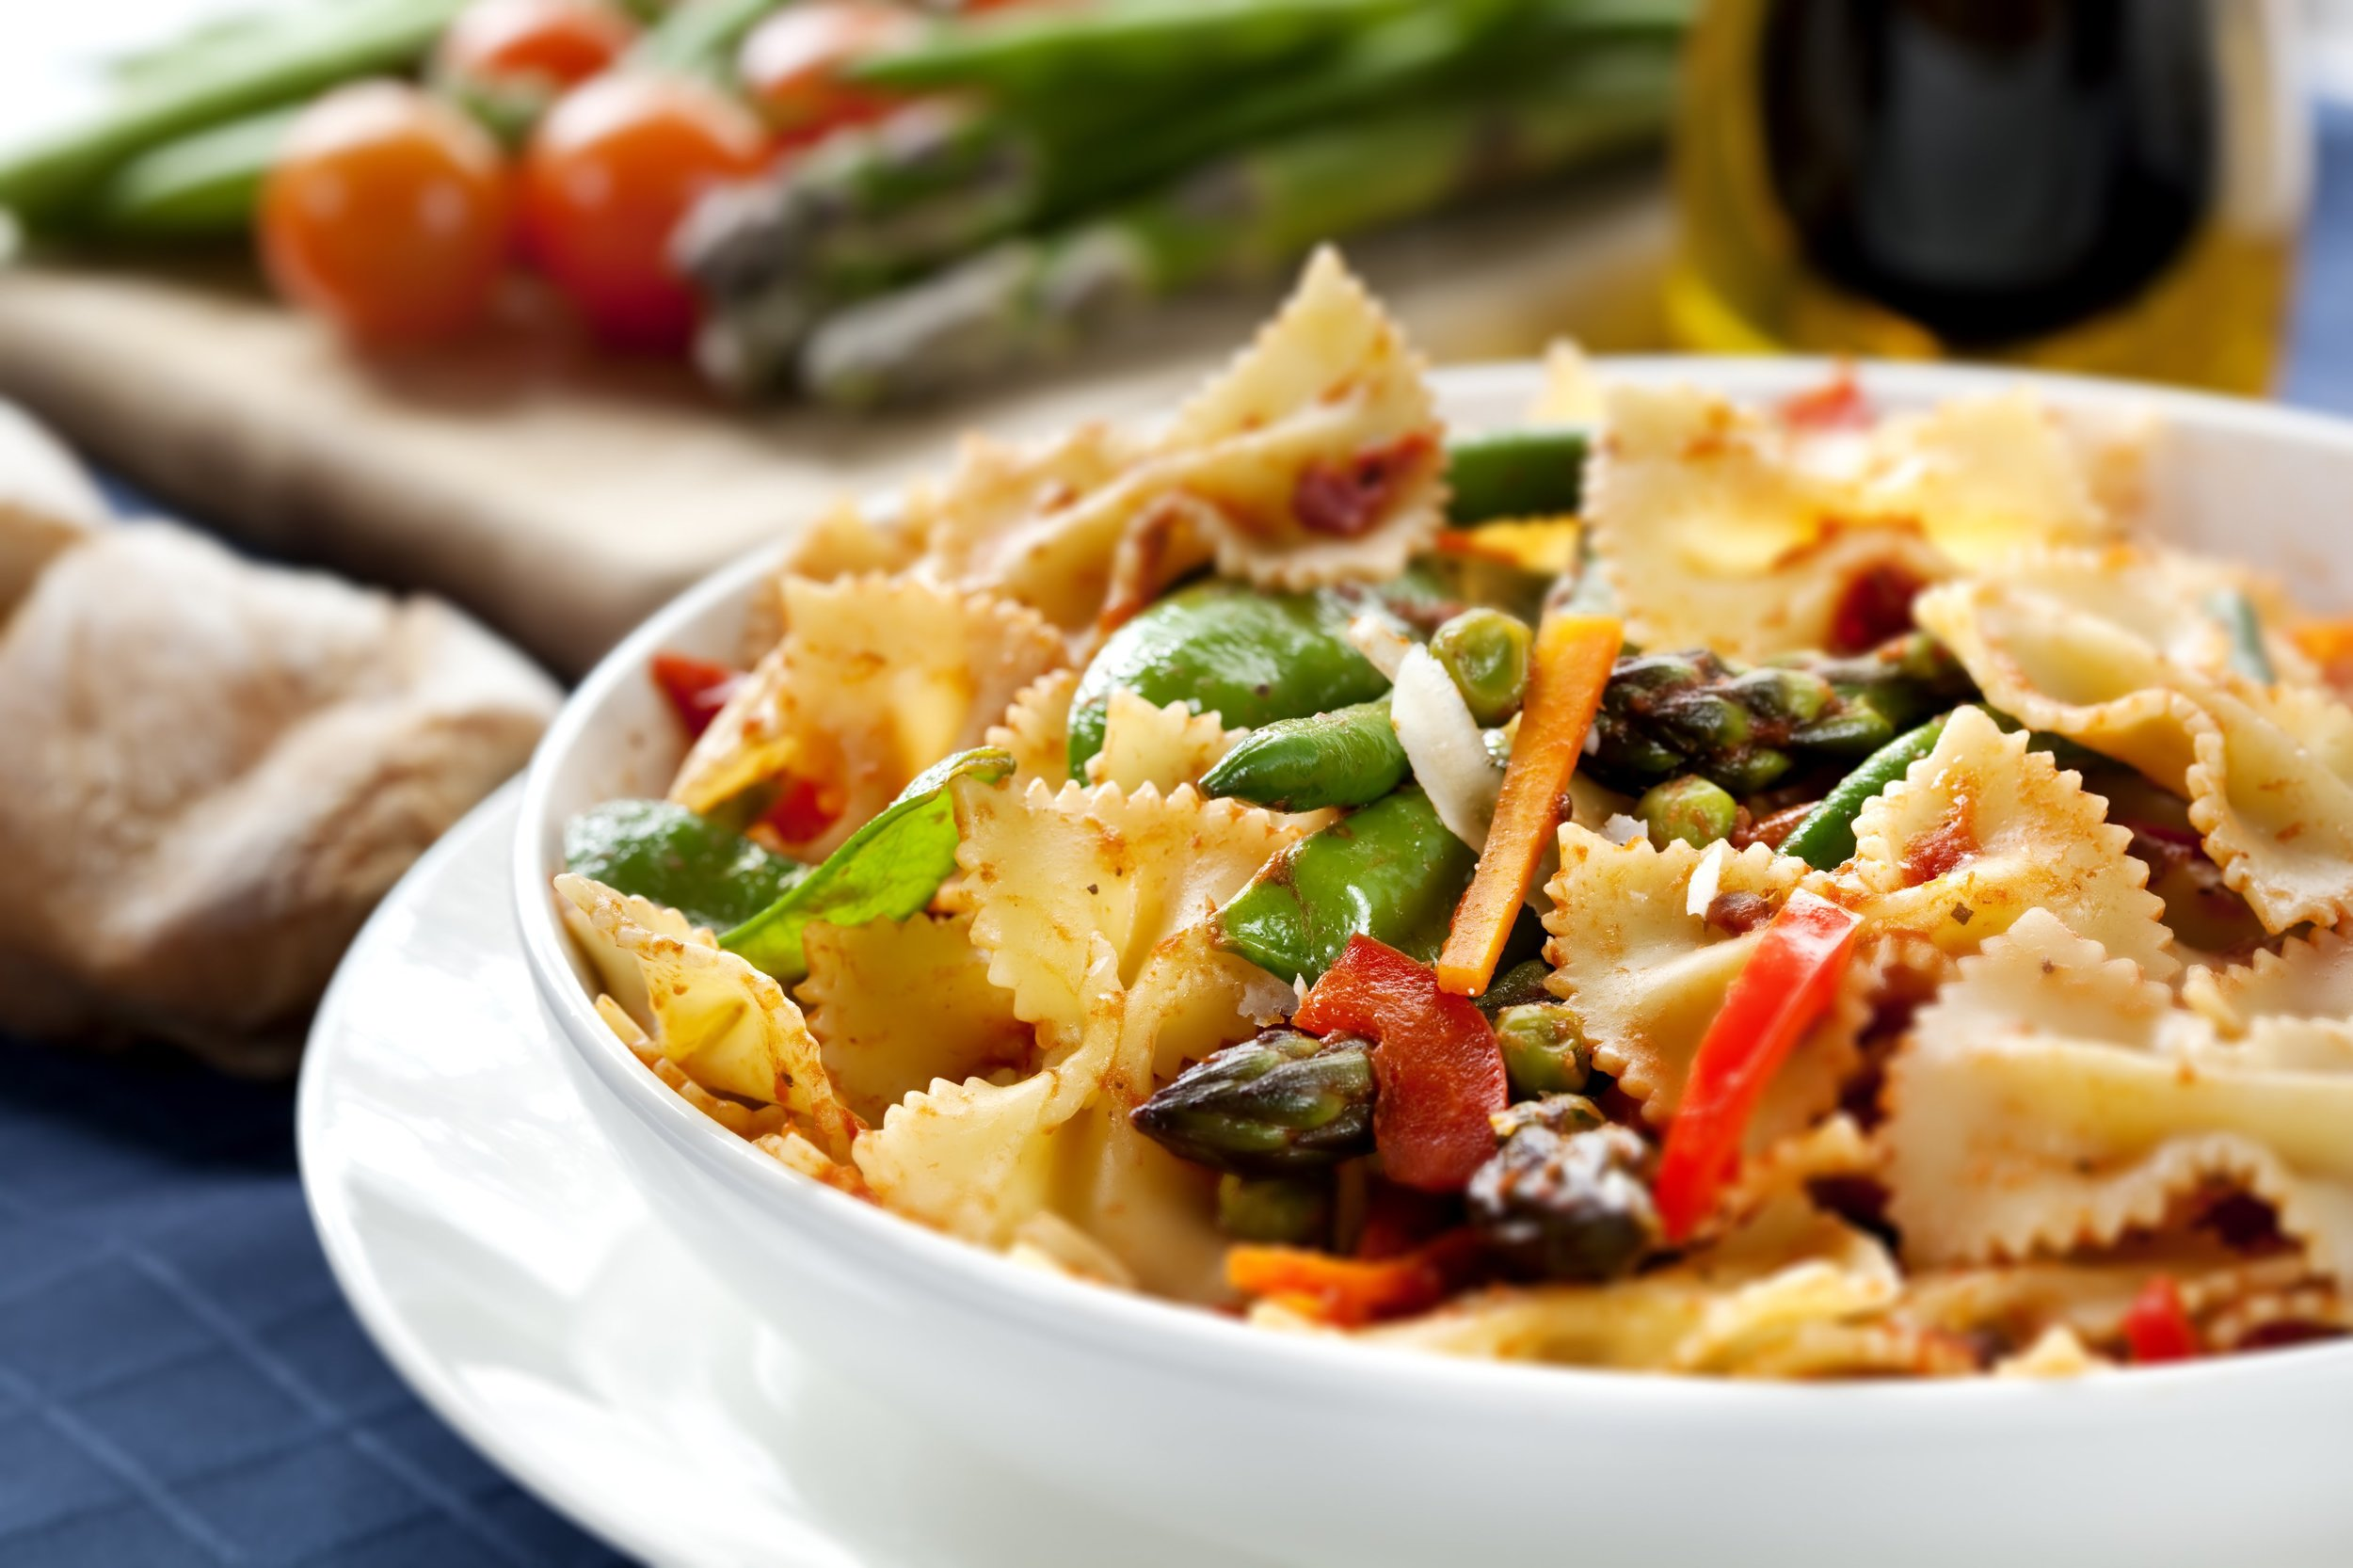 Spicy farfalle pasta with chicken garlic onions tomatoes jalapenos and asparagus